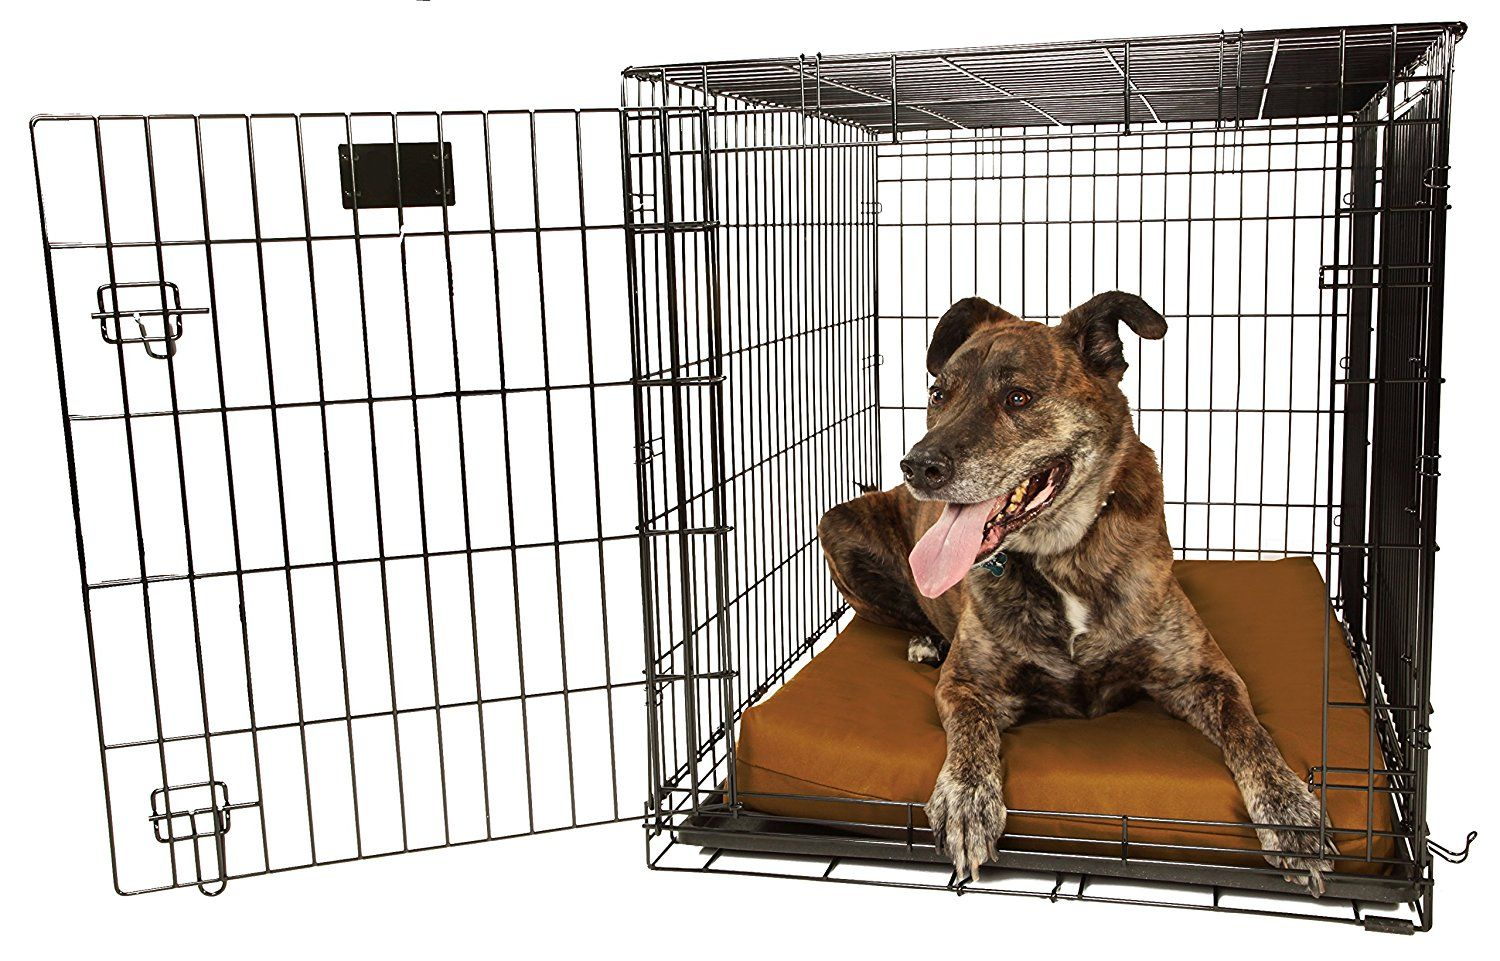 Orthopedic 4' Dog Crate Pad by Big Barker. Waterproof and